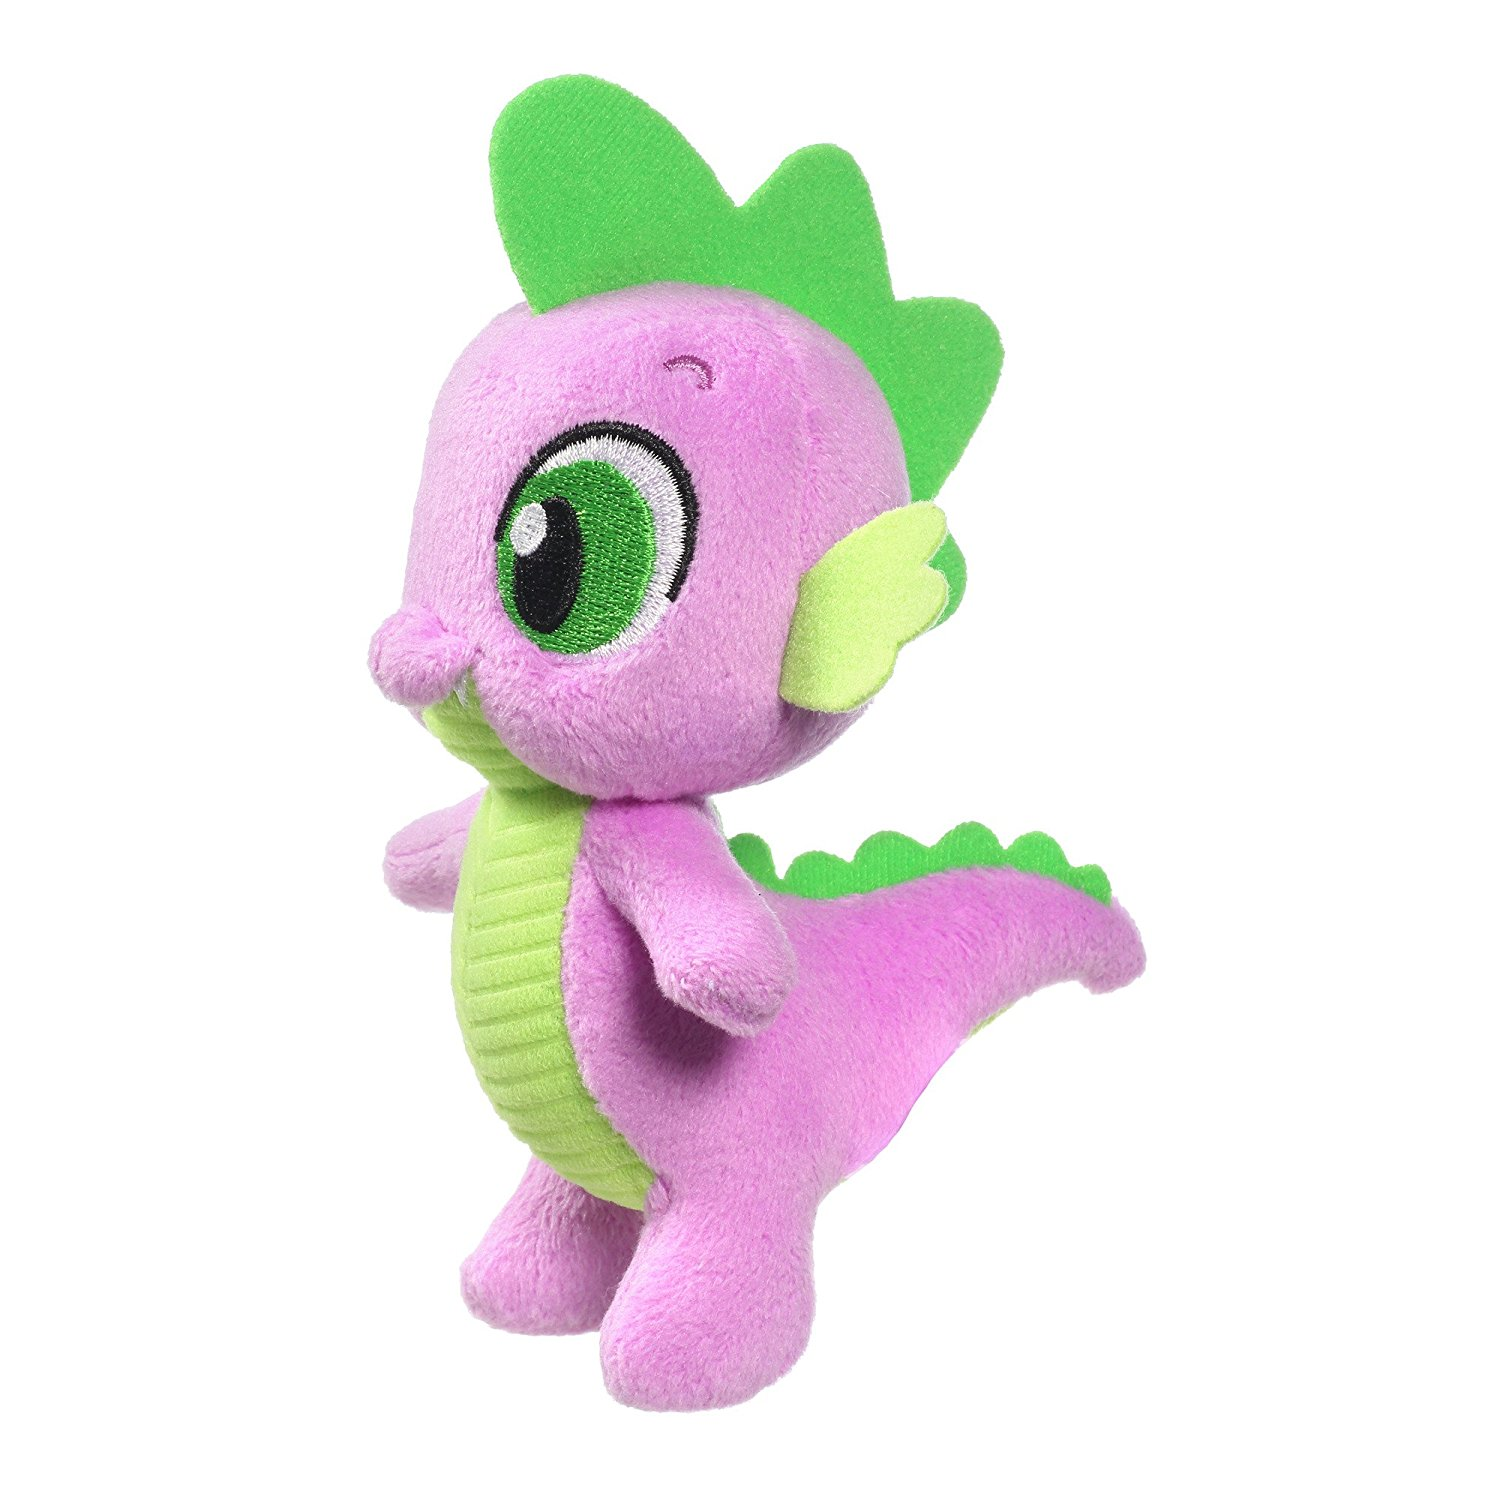 how to make a my little pony plush